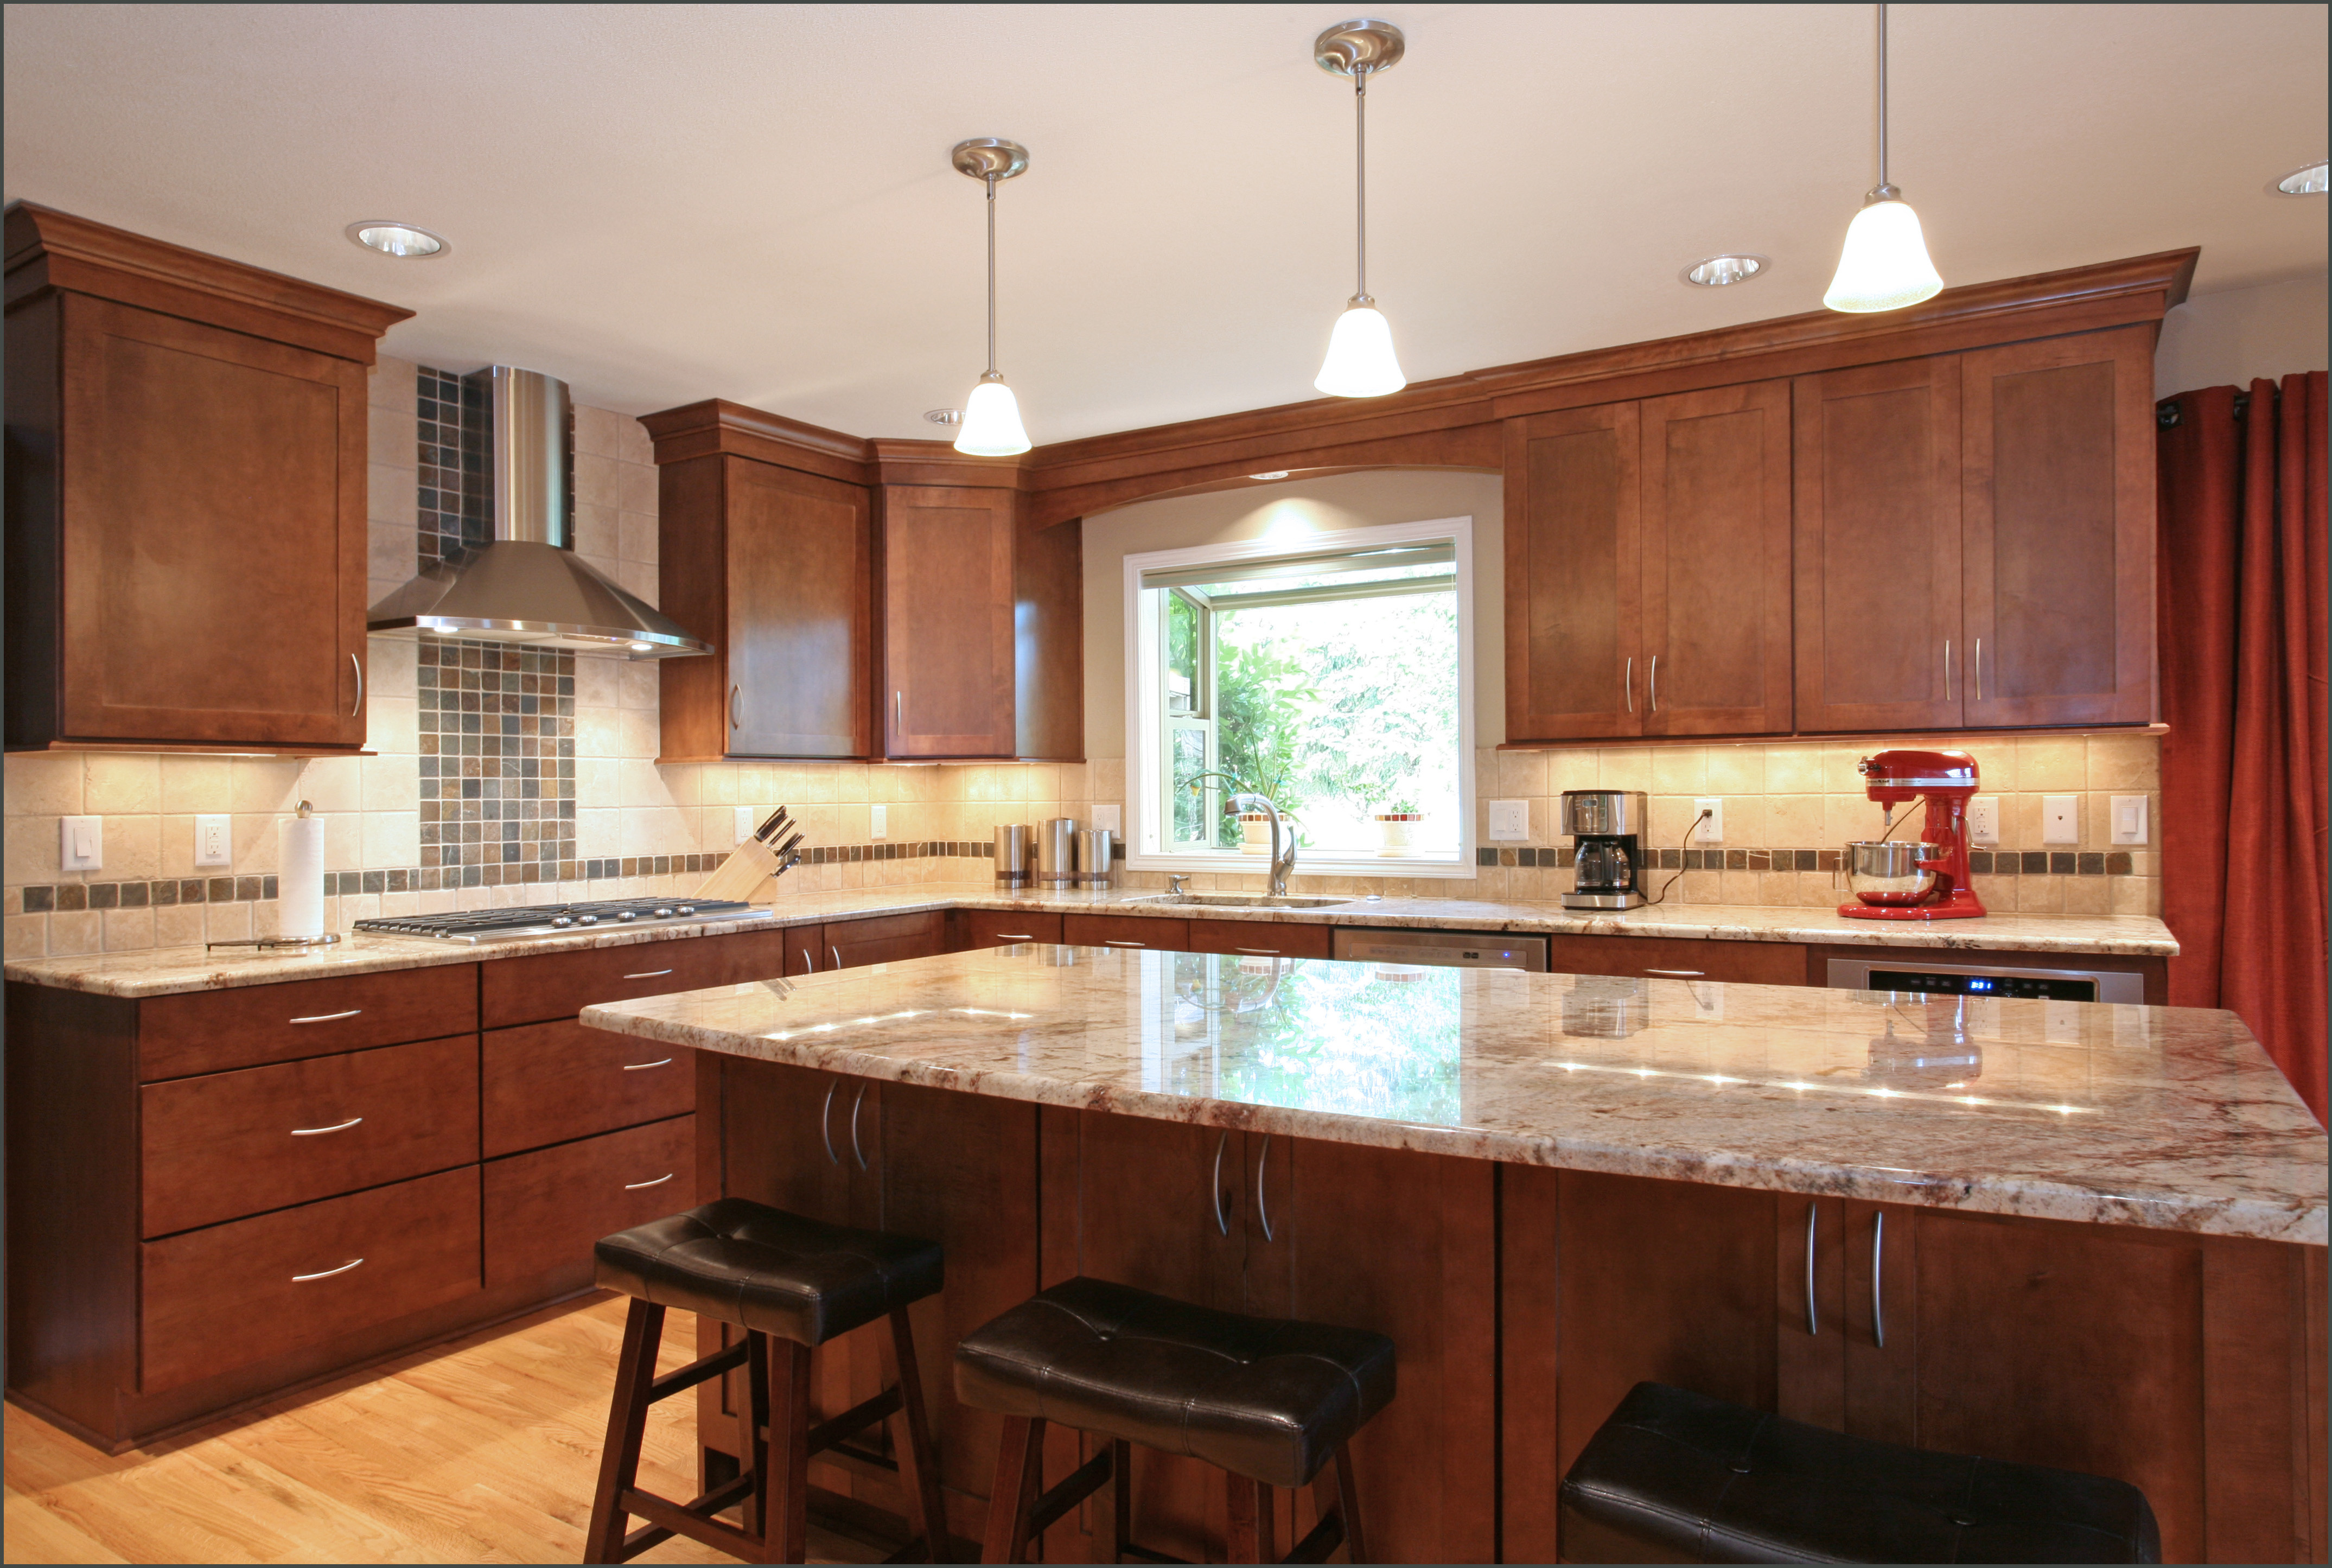 Best ideas about Remodeling Kitchen Ideas . Save or Pin Kitchen Remodel Design s Ideas Before After Now.